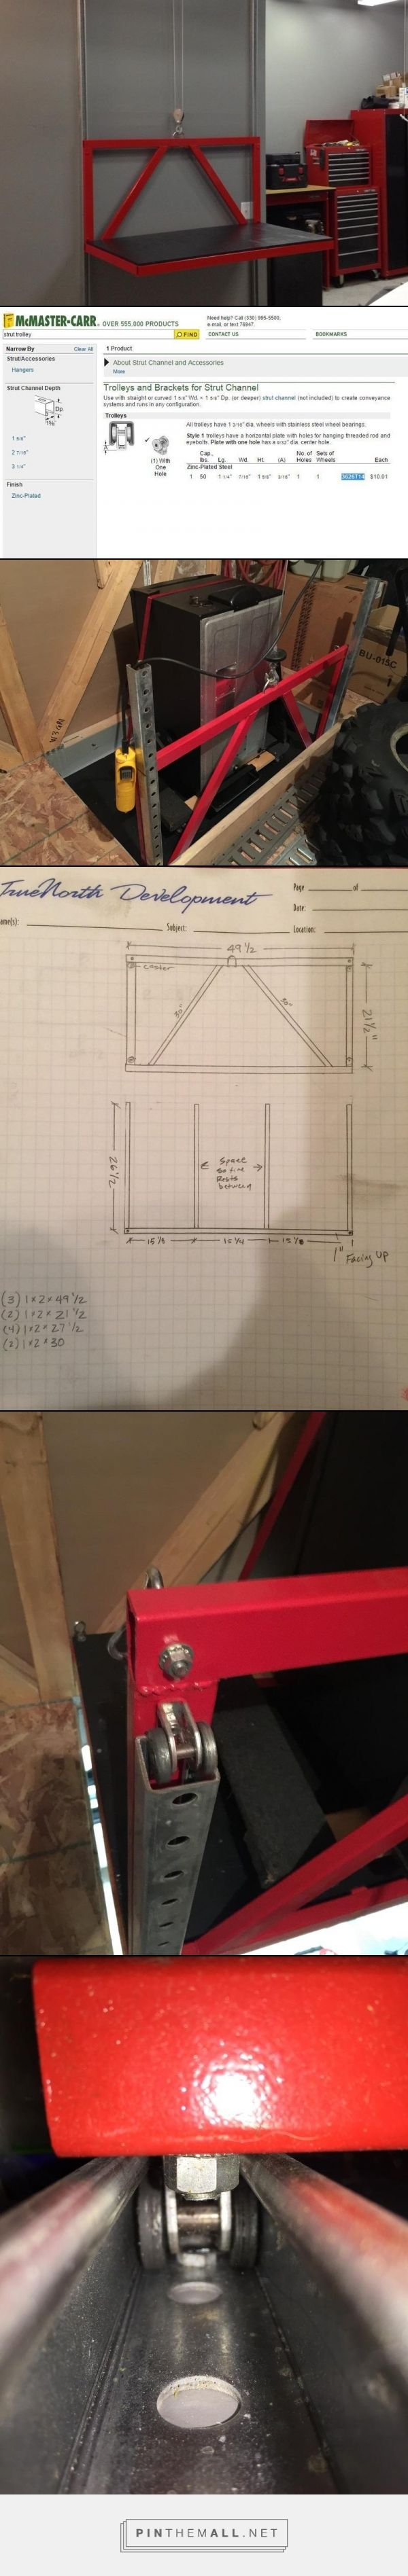 336 Best Opslagstavlen Images On Pinterest Carpentry Wood Simple Moonshine Still Diagram Lift Frame 1x2x125 Wall Rectangular Tubing About 30ft Total